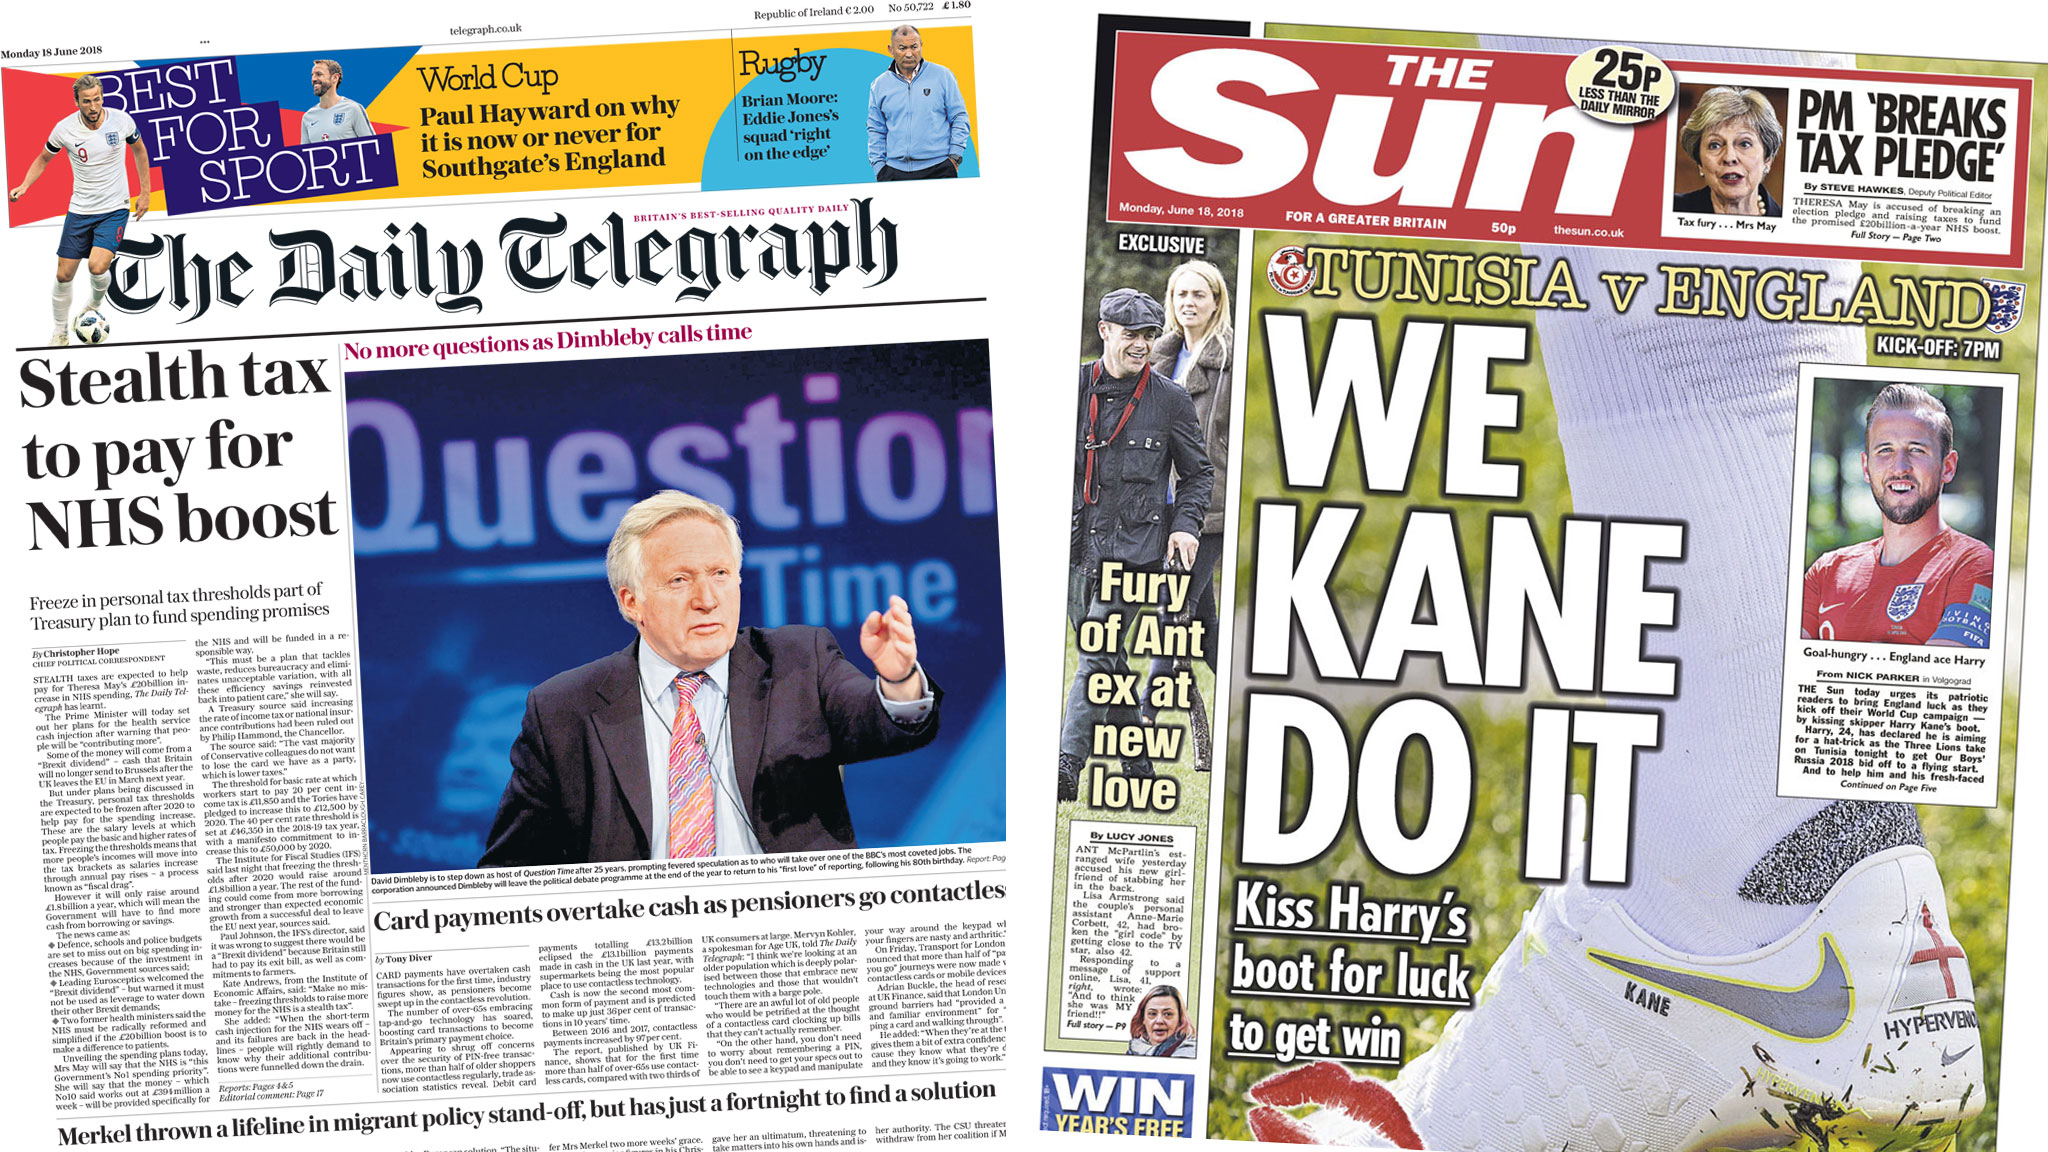 Newspaper headlines: PM 'under fire for Brexit dividend claim' and 'We Kane Do It'